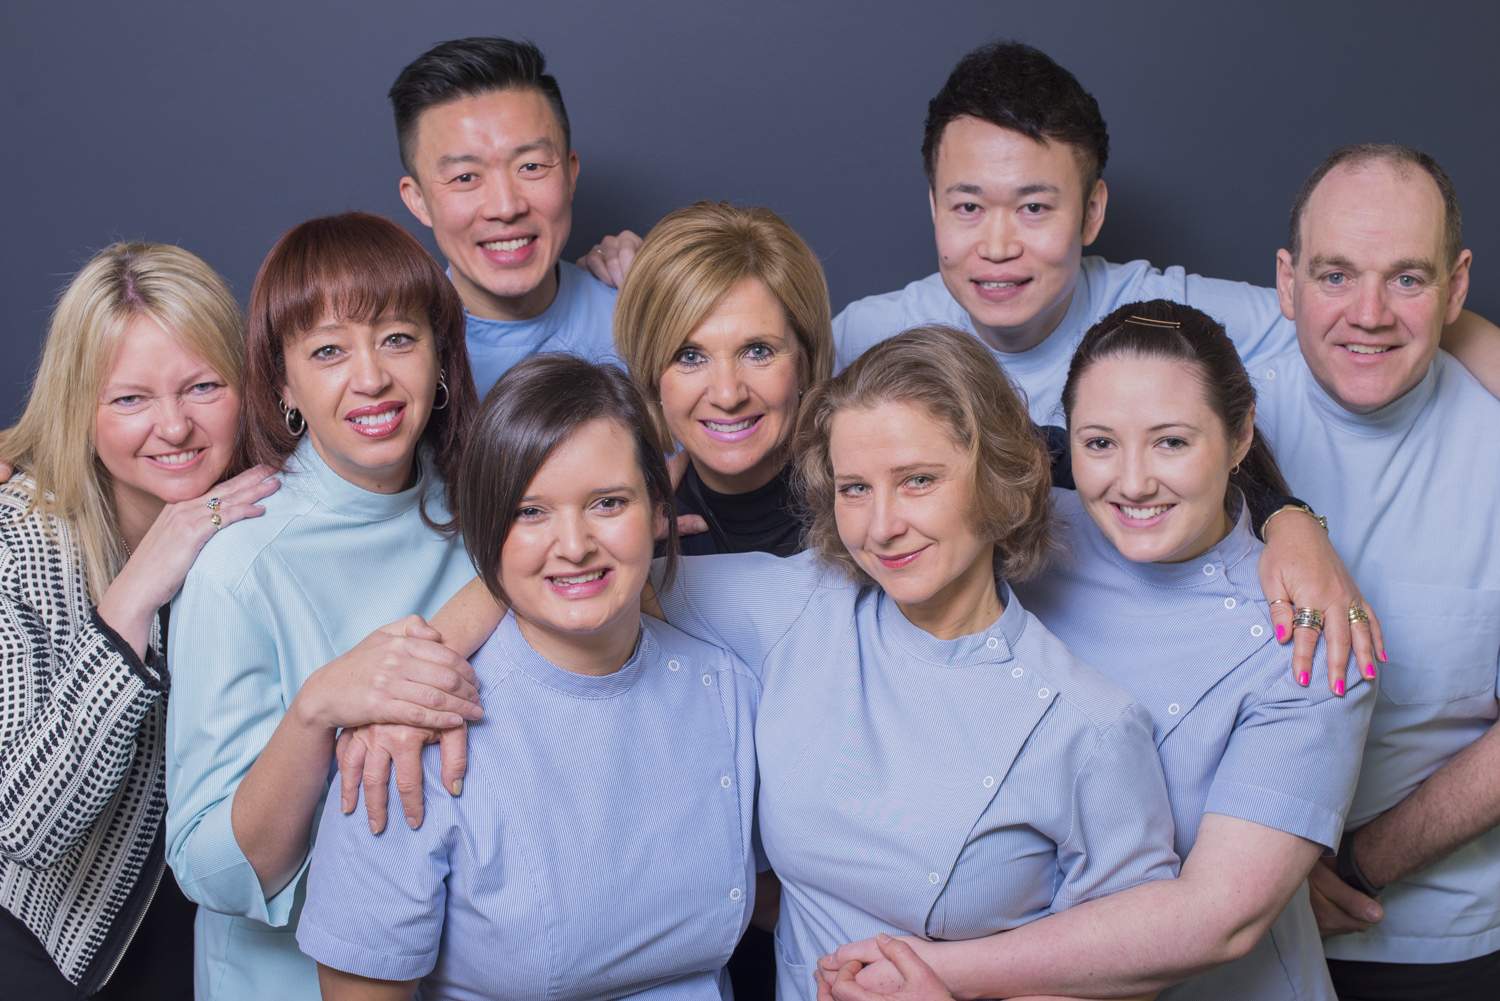 Contact Dentist in Dingley